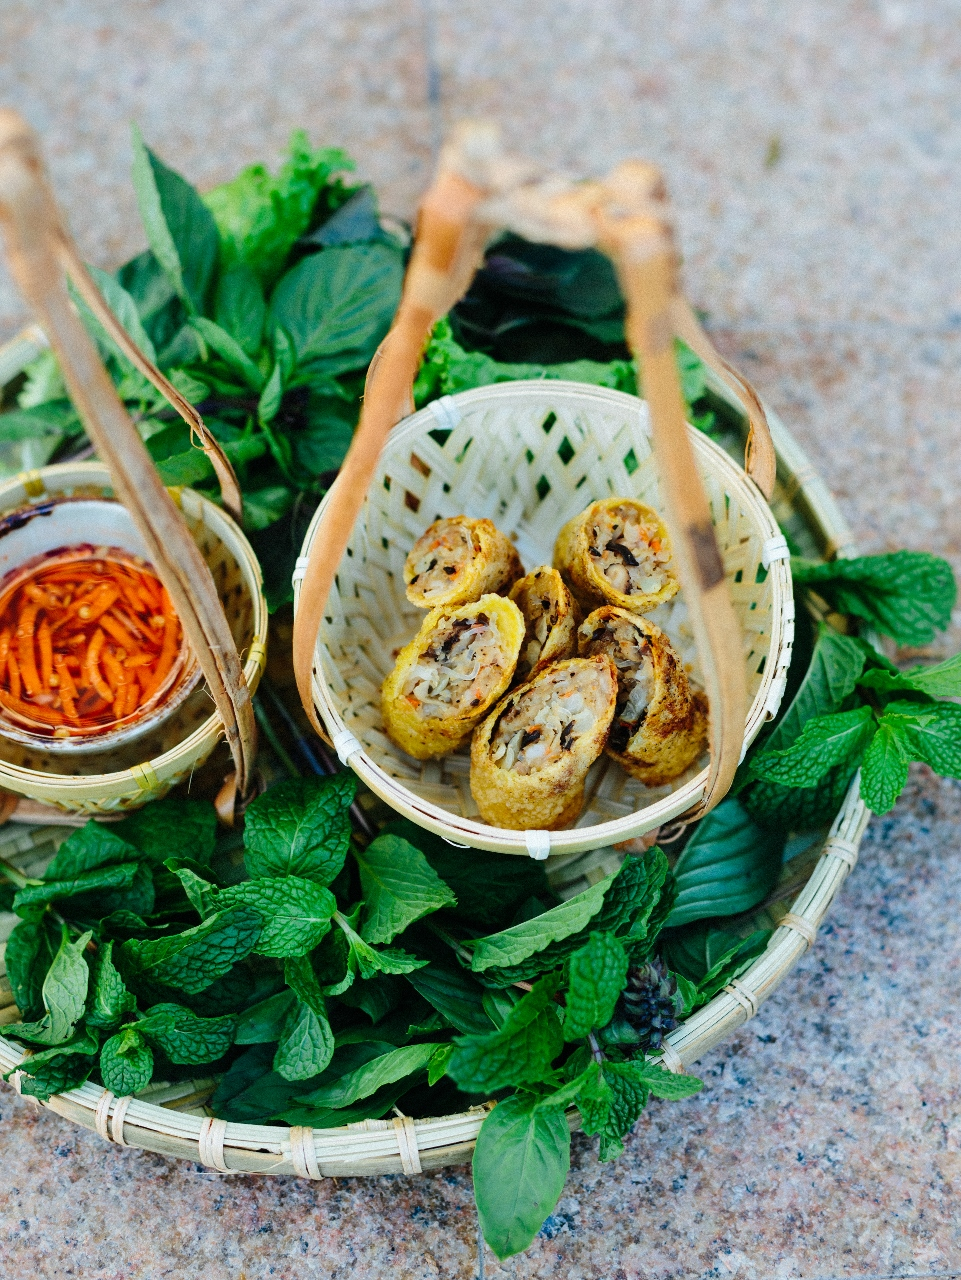 Anh and Chi Crisp Spring Rolls by Vy Tran Photography.jpg